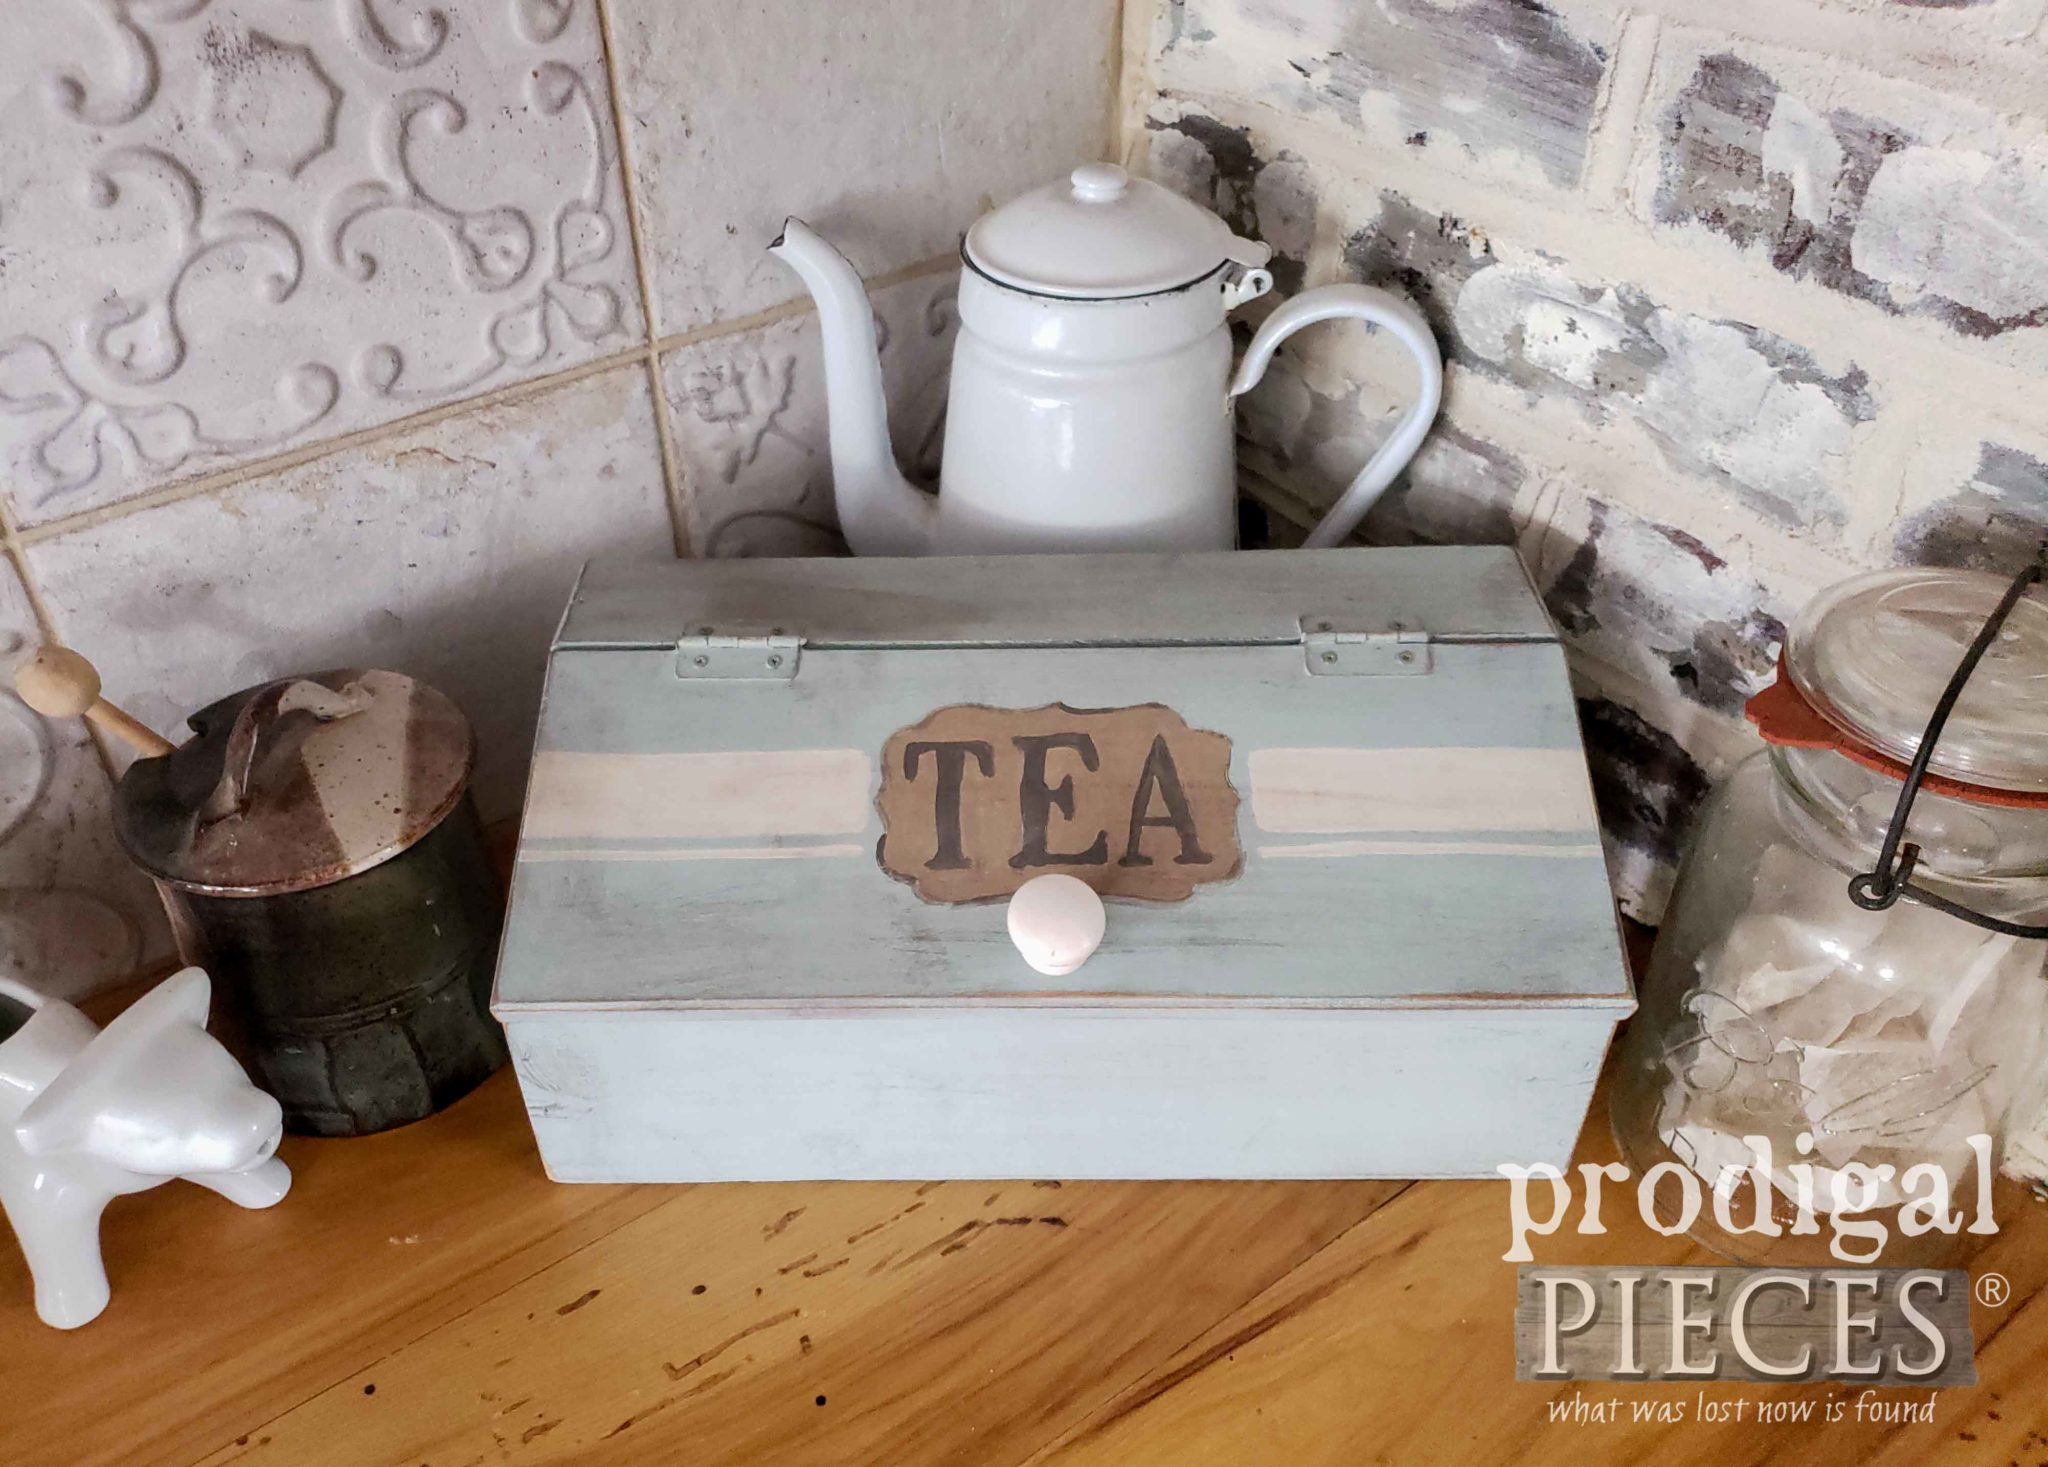 Handmade Vintage Tea Box for Farmhouse Cottage Style Kitchen Storage by Larissa of Prodigal Pieces | prodigalpieces.com #prodigalpieces #handmade #farmhouse #shopping #diy #vintage #home #homedecor #homedecorideas